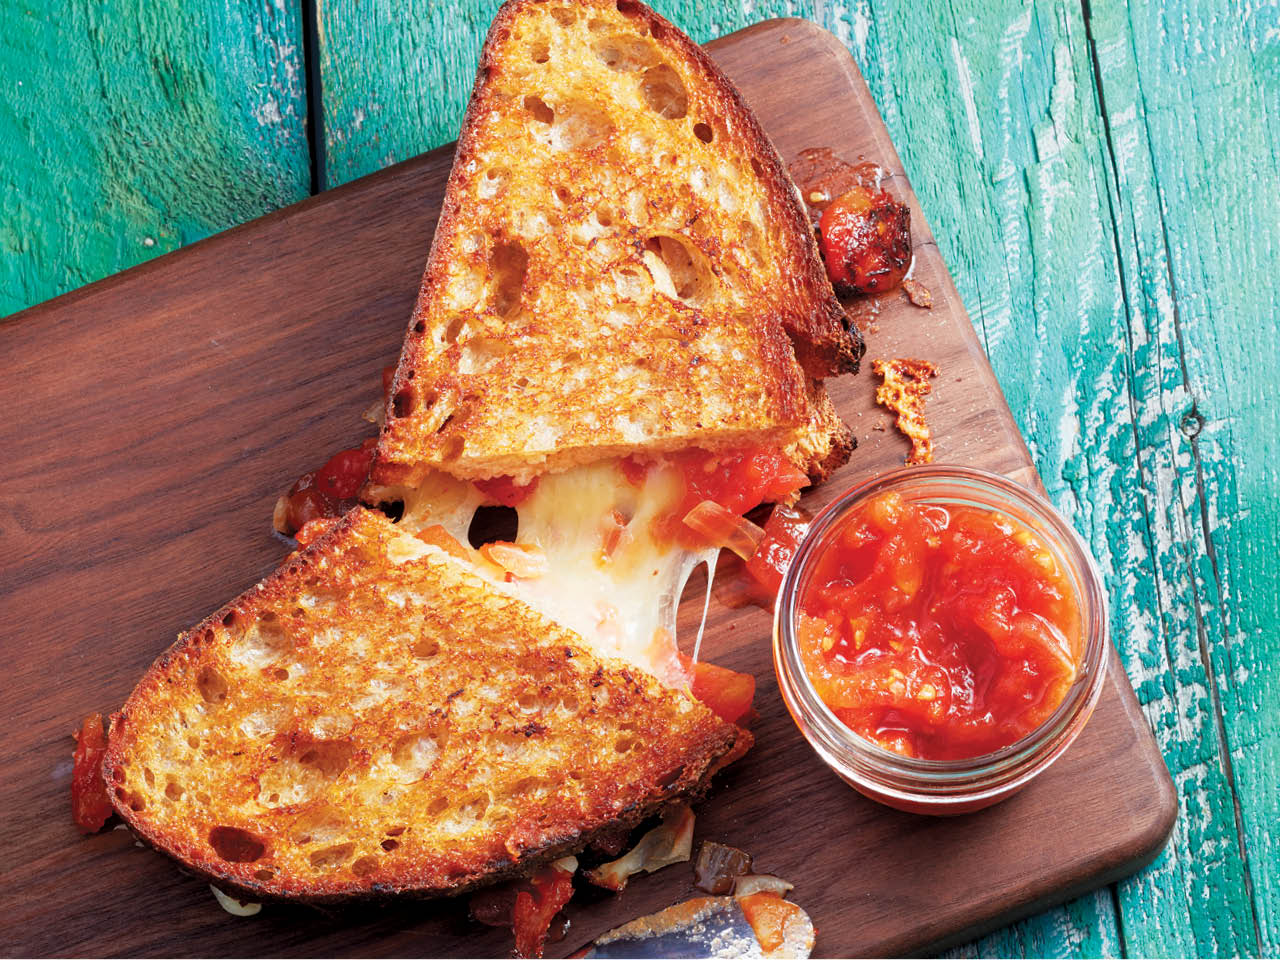 Melted cheese inside a grilled cheese with tomato jam